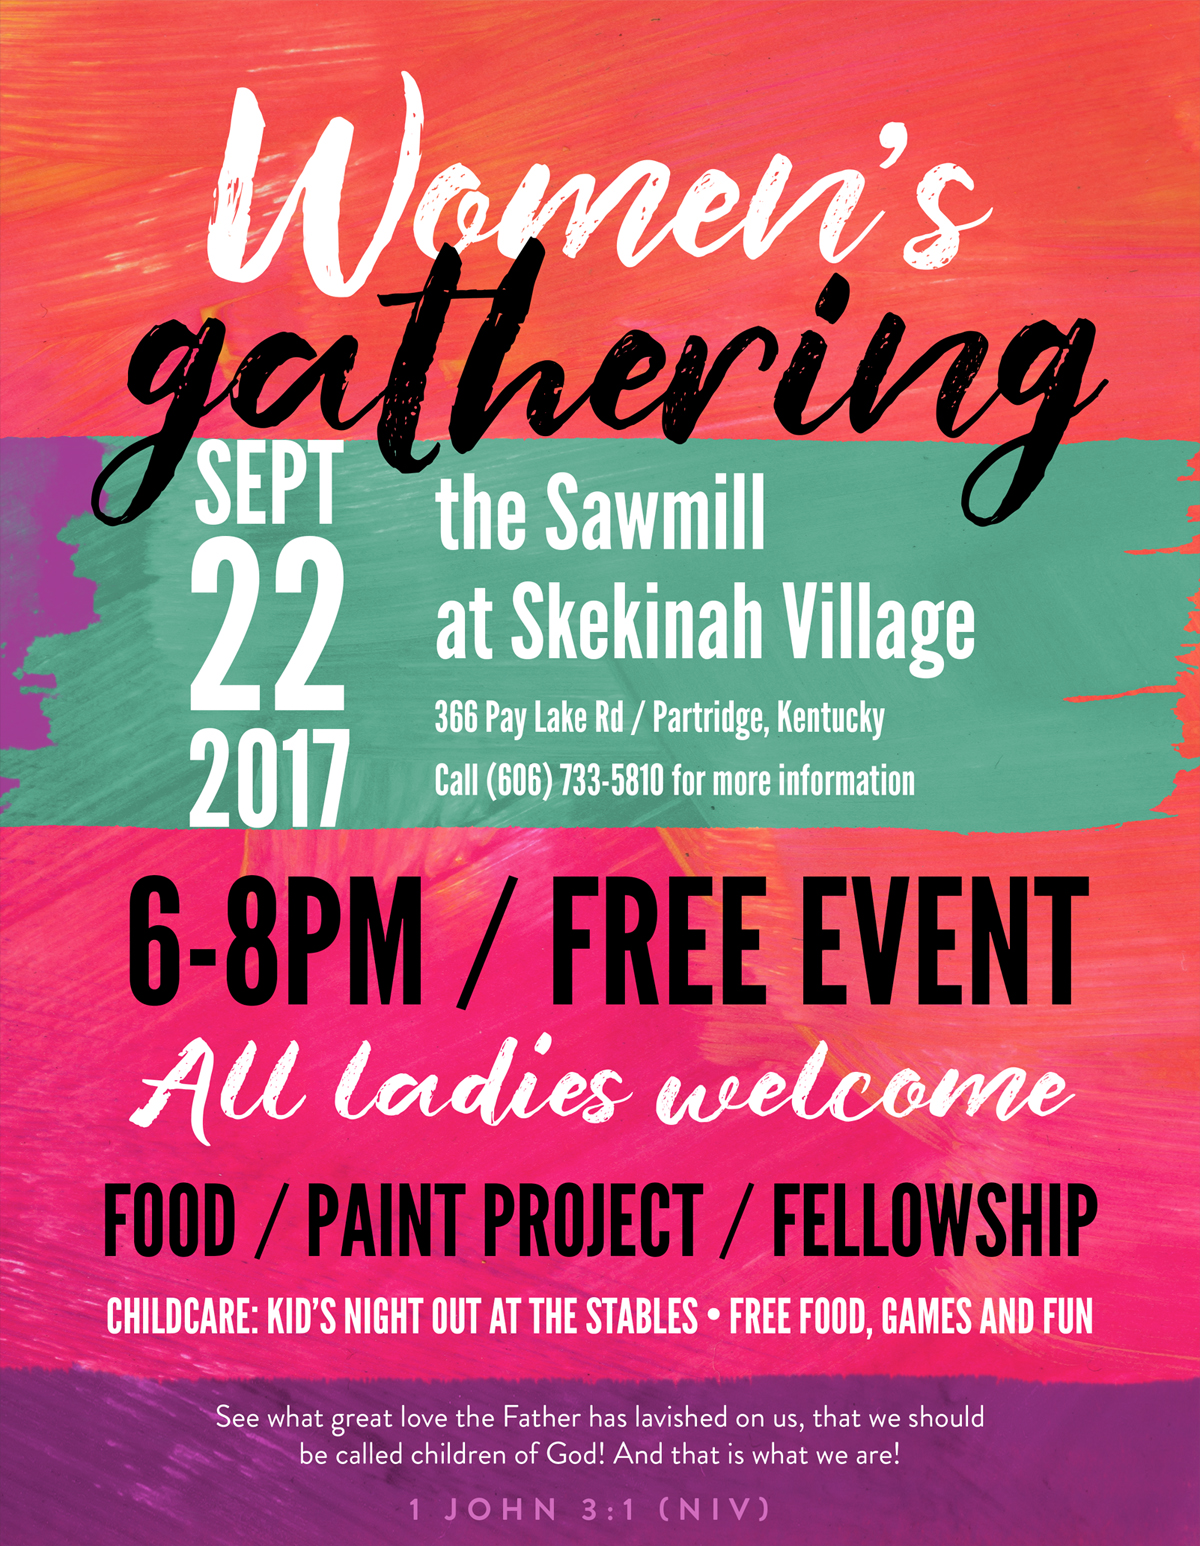 Women's Gathering Flyer